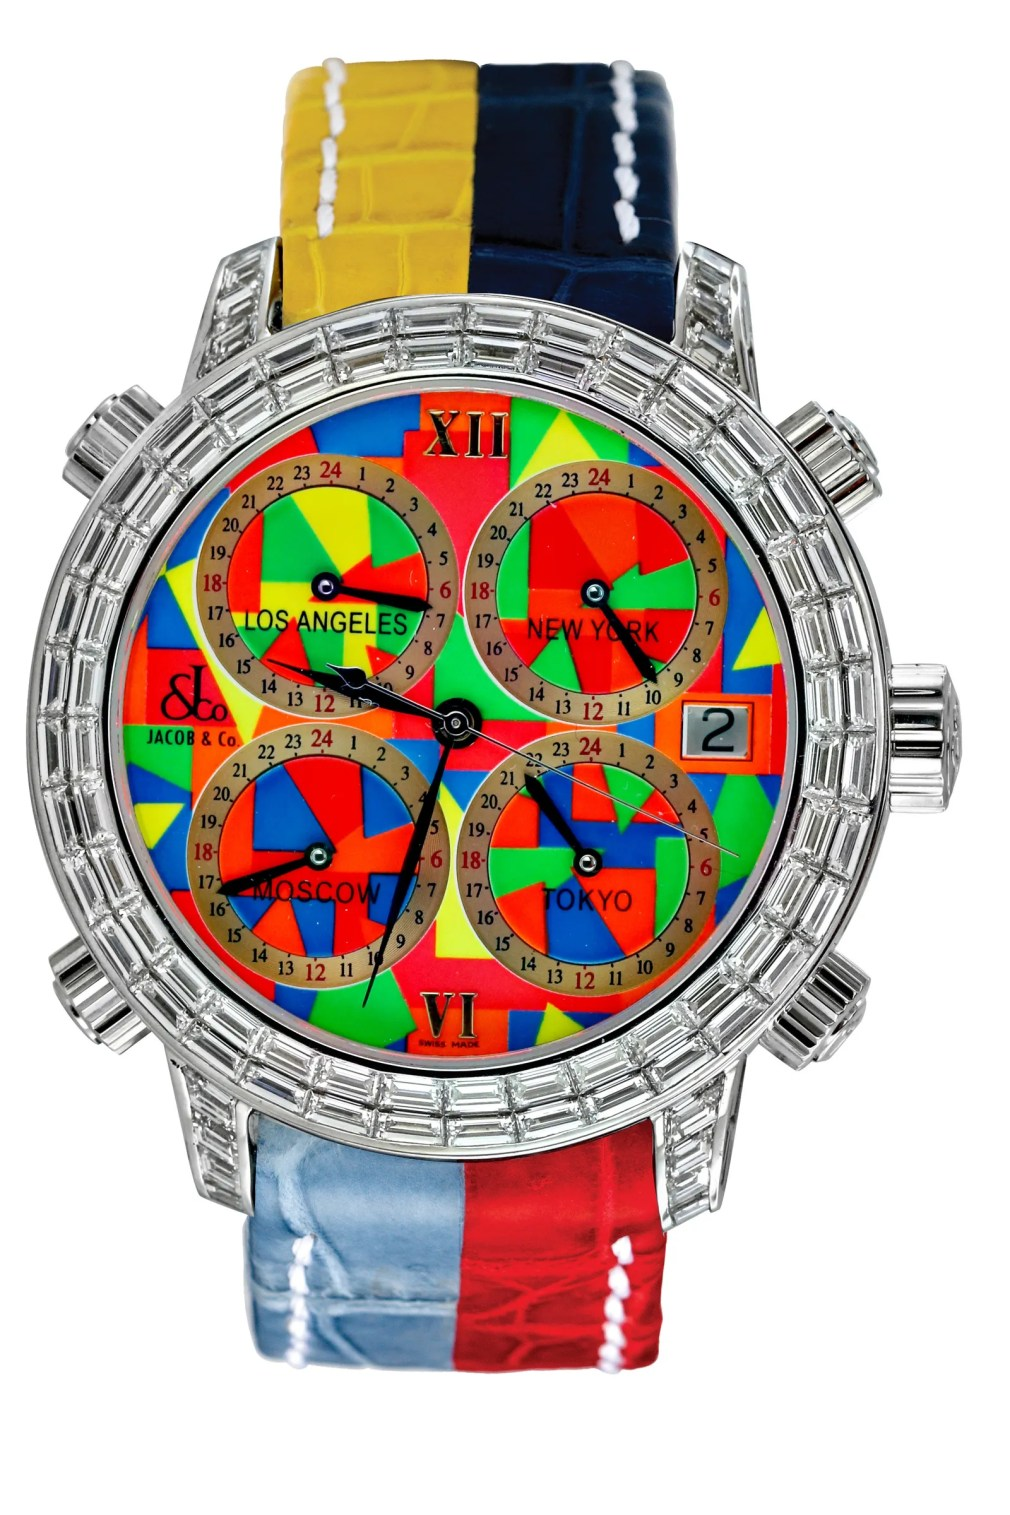 A multicolored watch